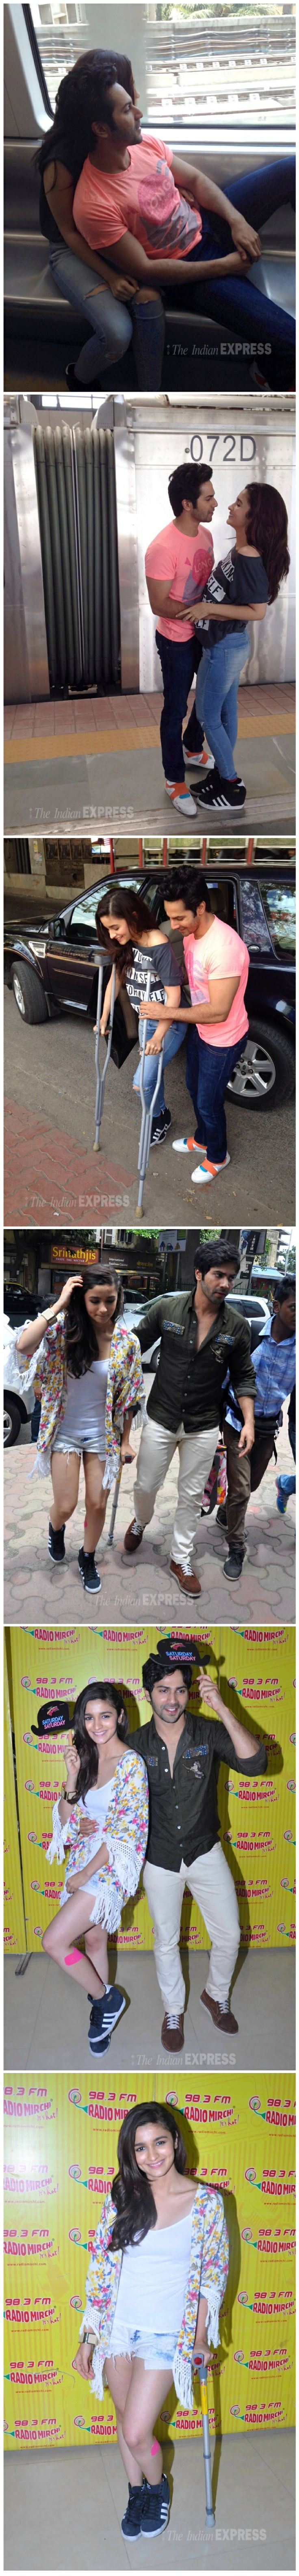 There's no stopping Alia Bhatt, despite injury actress takes a metro ride with Varun.